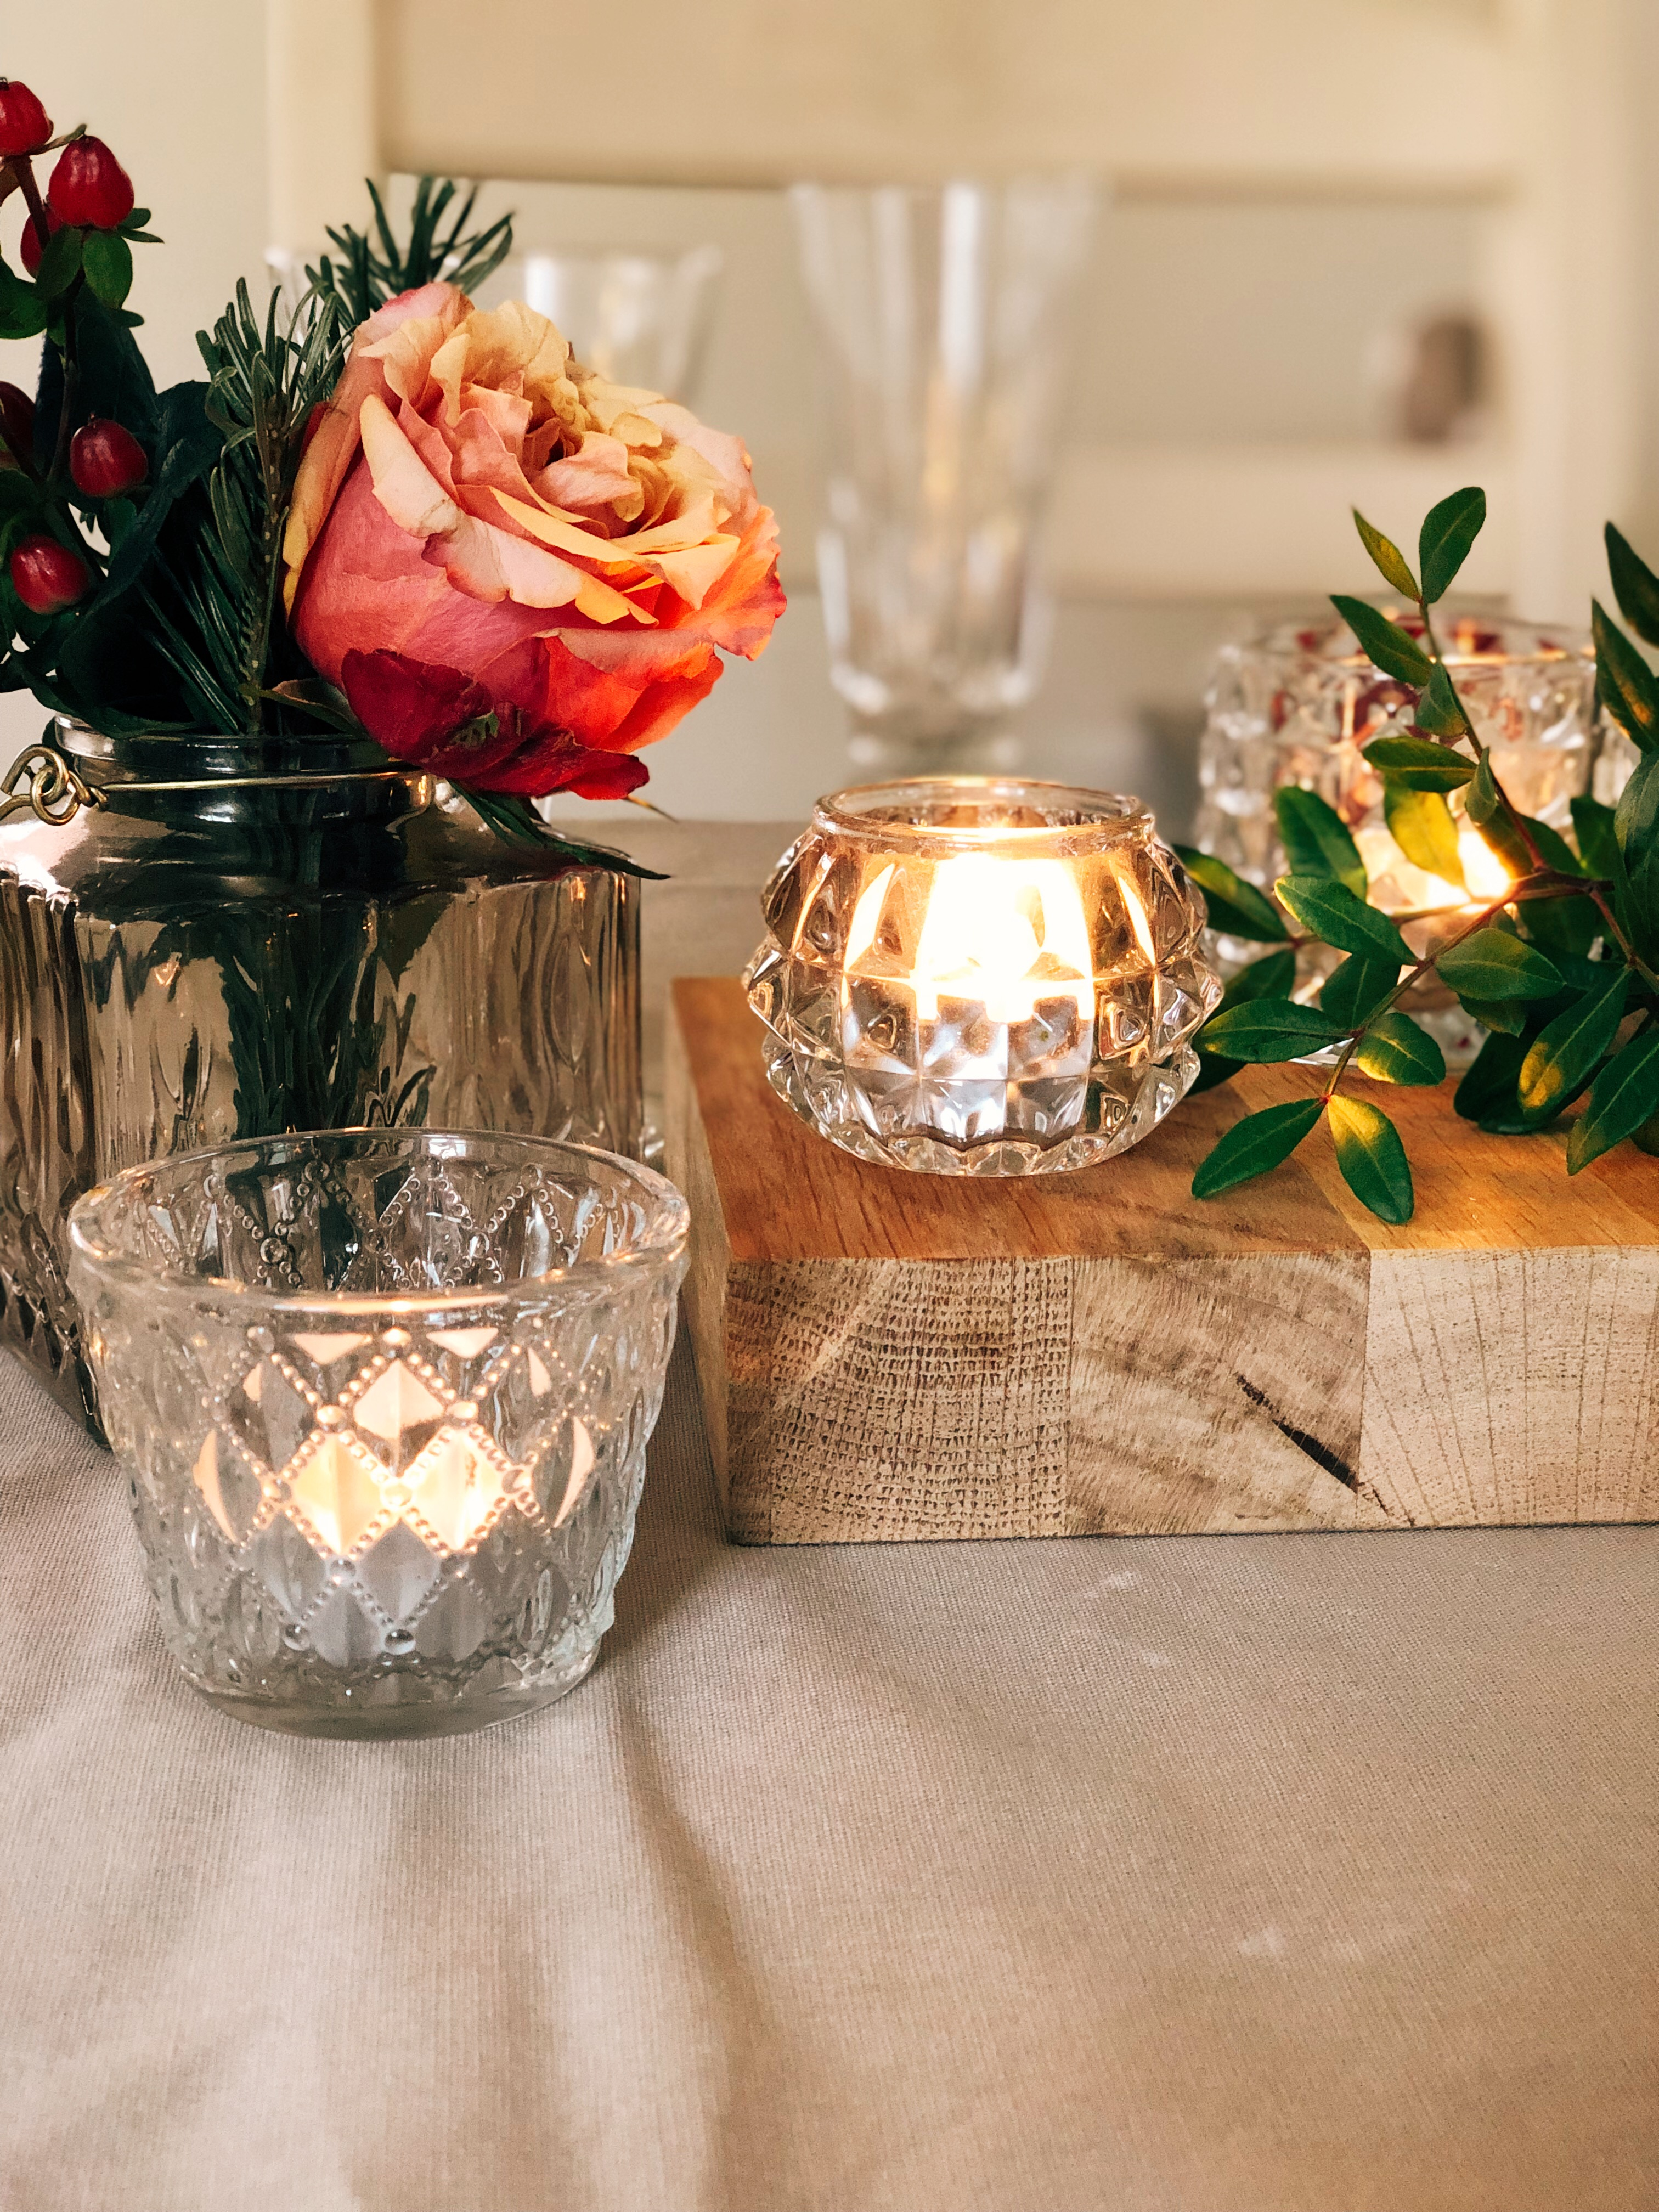 Dusky roses in vintage glassware linen tablecloth